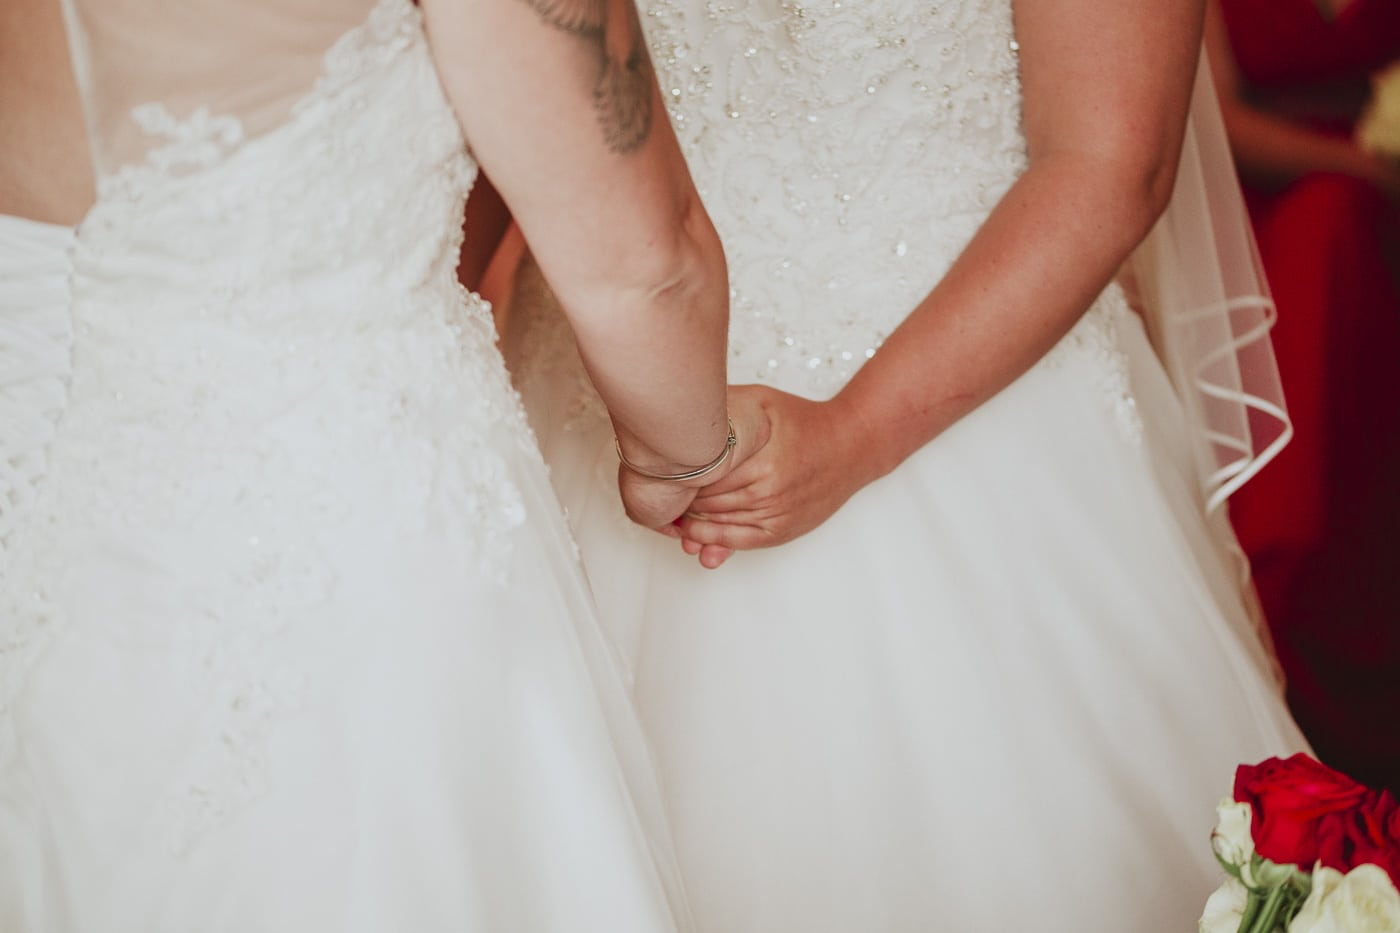 Holding hands after vows for wedding by Joshua Wyborn photography